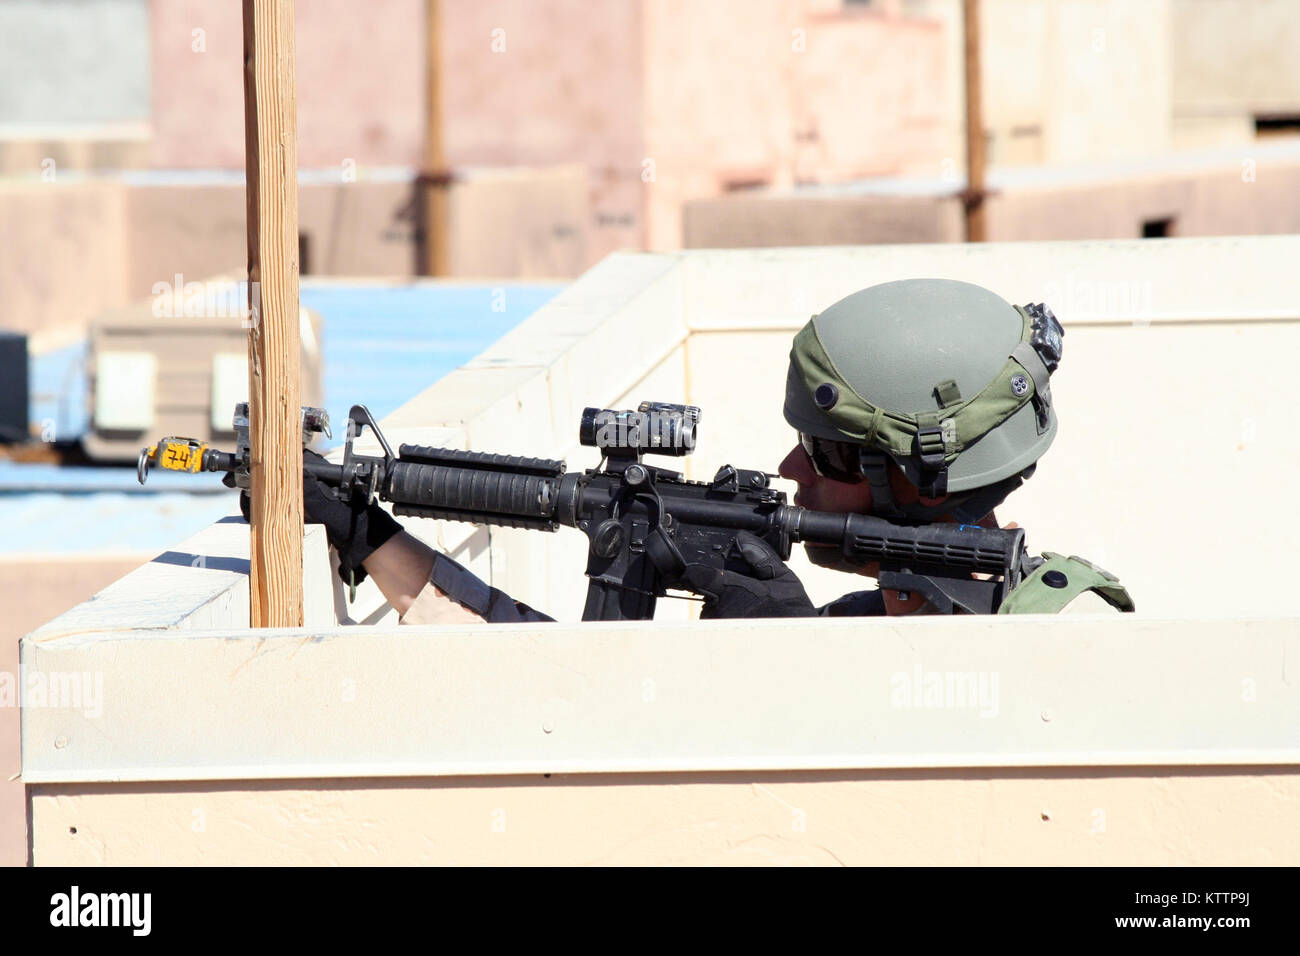 NATIONAL TRAINING CENTER, FORT IRWIN, Calif. – A Soldier from 11th Armored Cavalry Regiment, role-playing as an Stock Photo